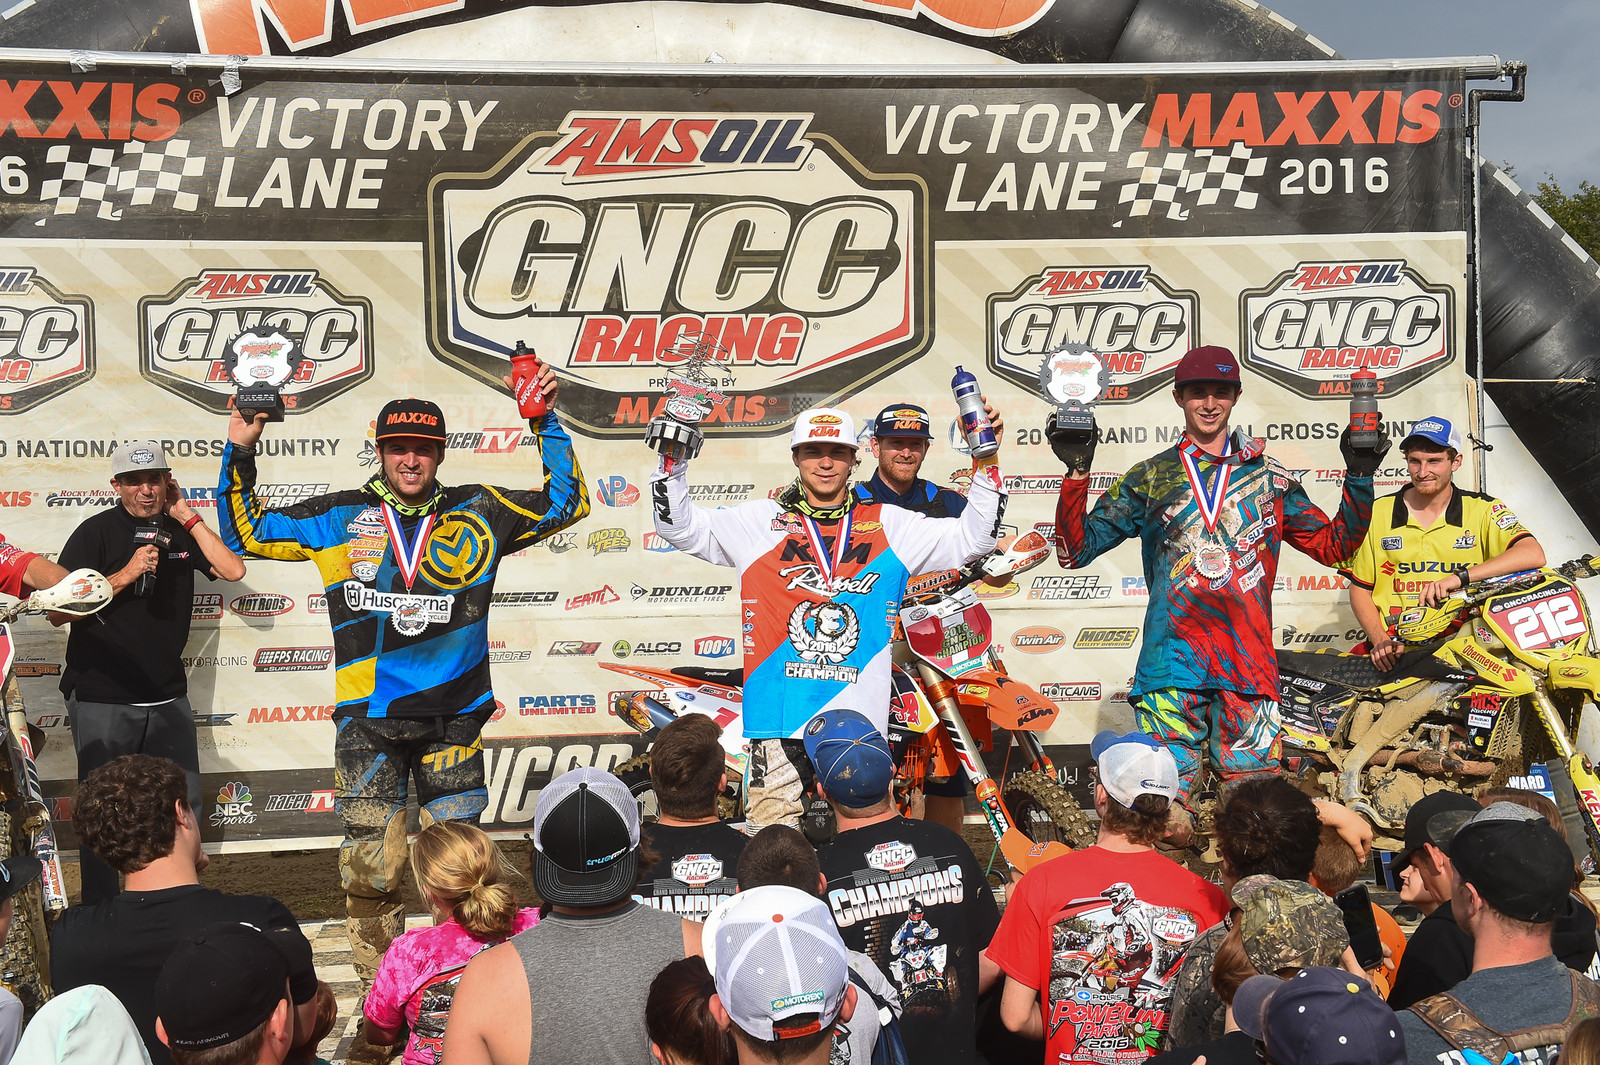 Kailub Russell, Thad Duvall and Ricky Russell - Powerline Park GNCC - Motocross Pictures - Vital MX